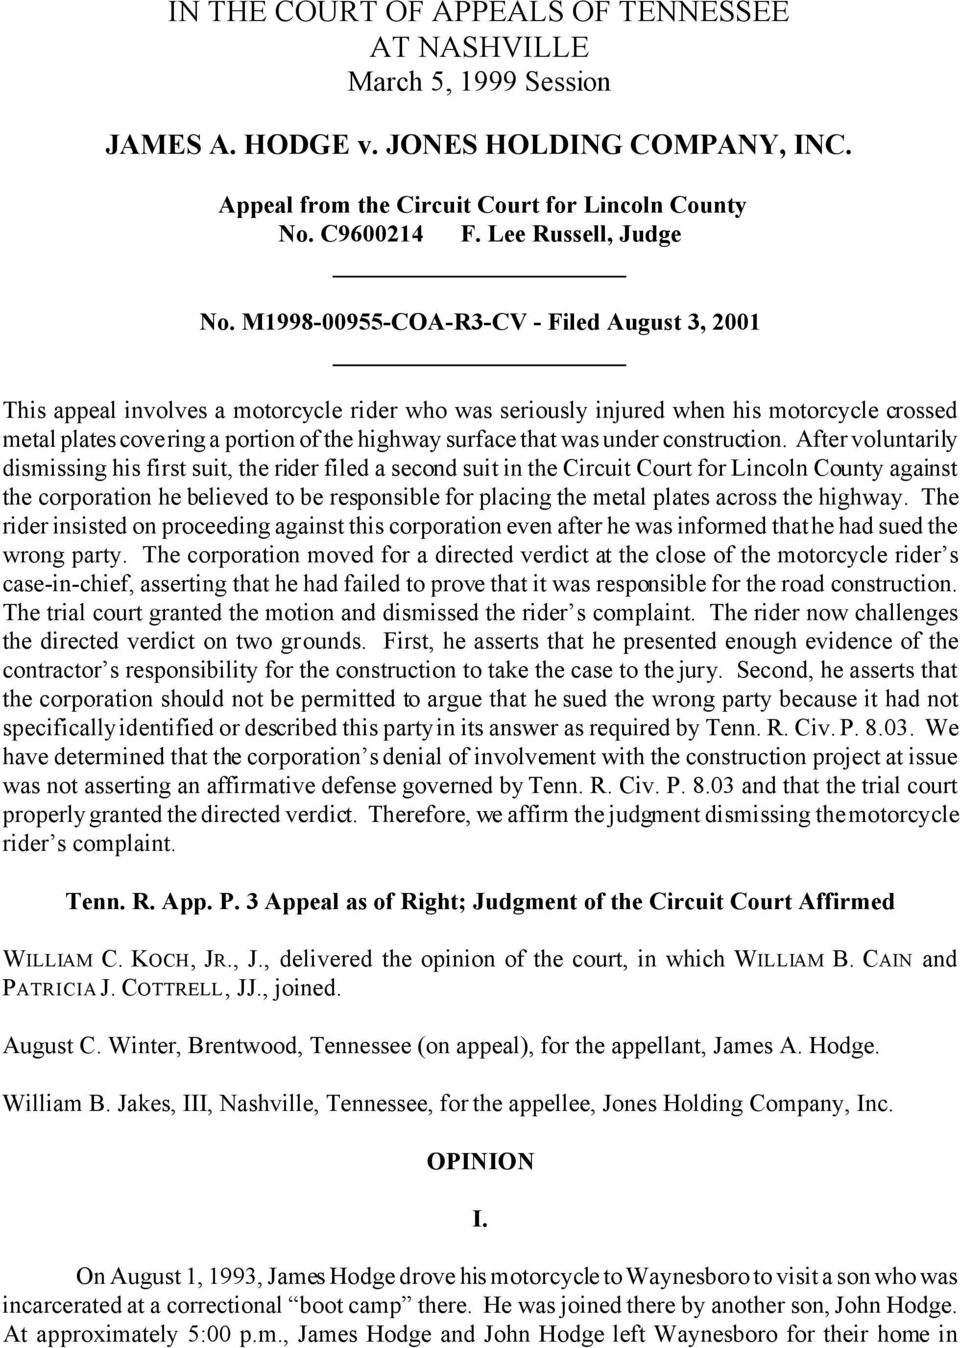 M1998-00955-COA-R3-CV - Filed August 3, 2001 This appeal involves a motorcycle rider who was seriously injured when his motorcycle crossed metal plates covering a portion of the highway surface that